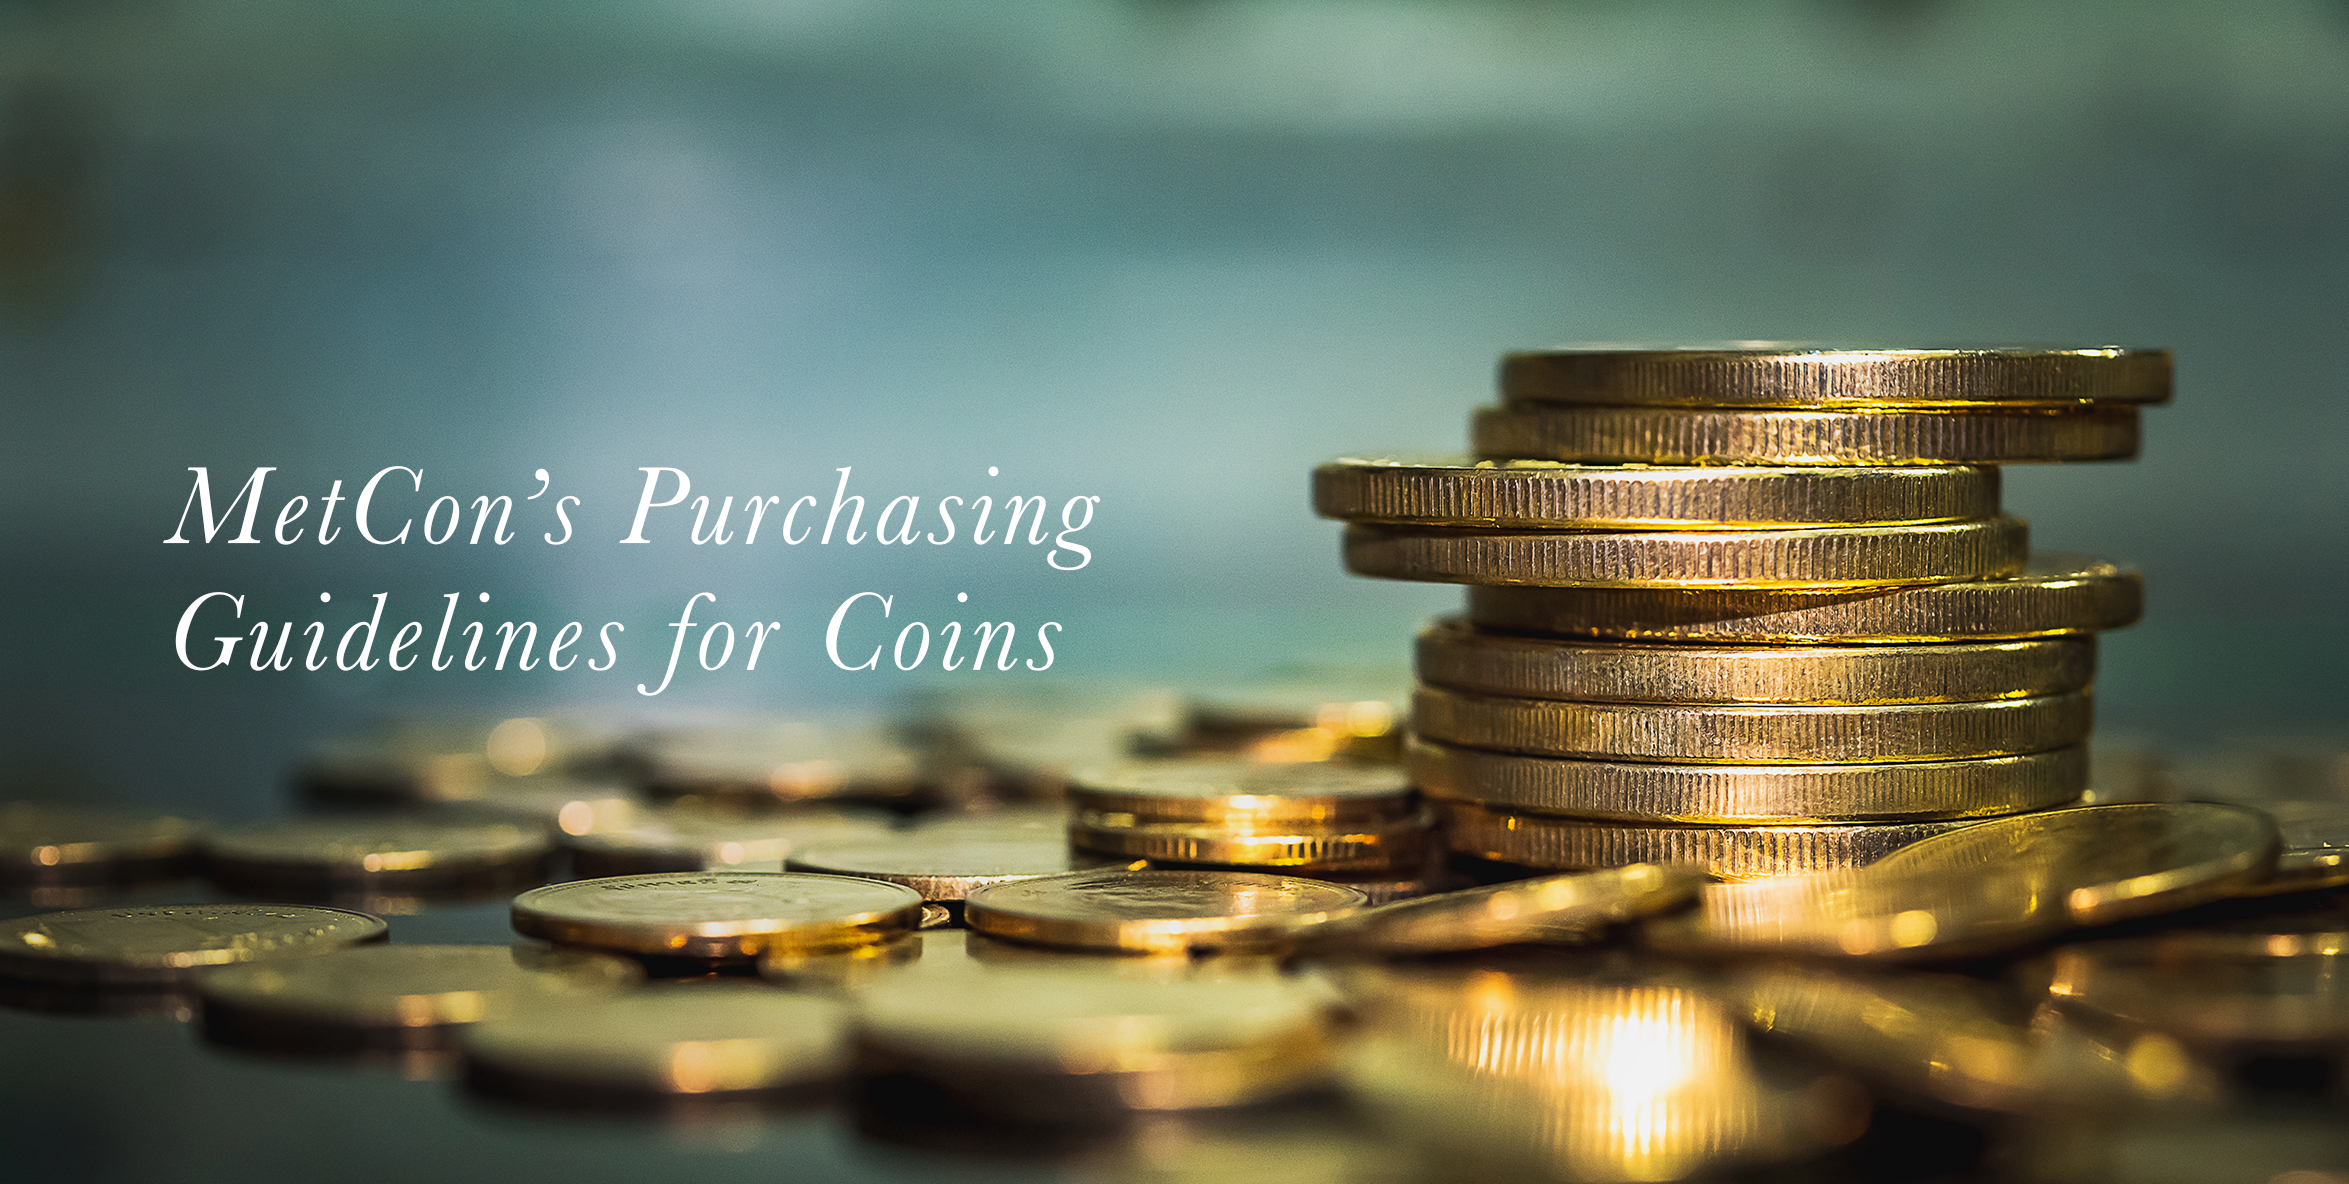 MetCon's Purchasing Guidelines for Coins